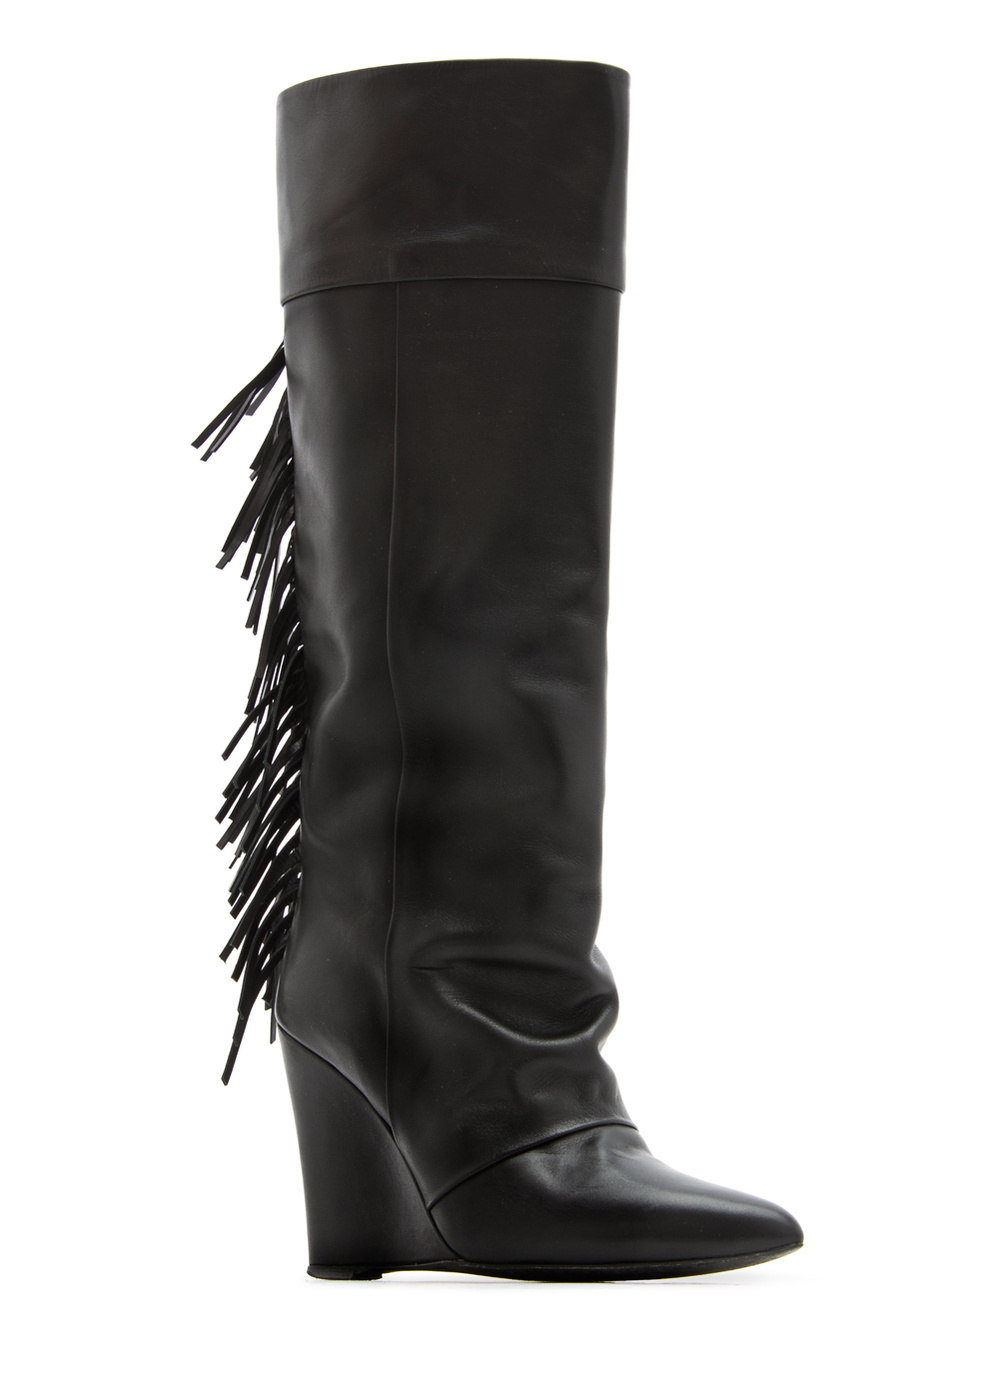 Mango Fringed Leather Wedge Boots.jpg